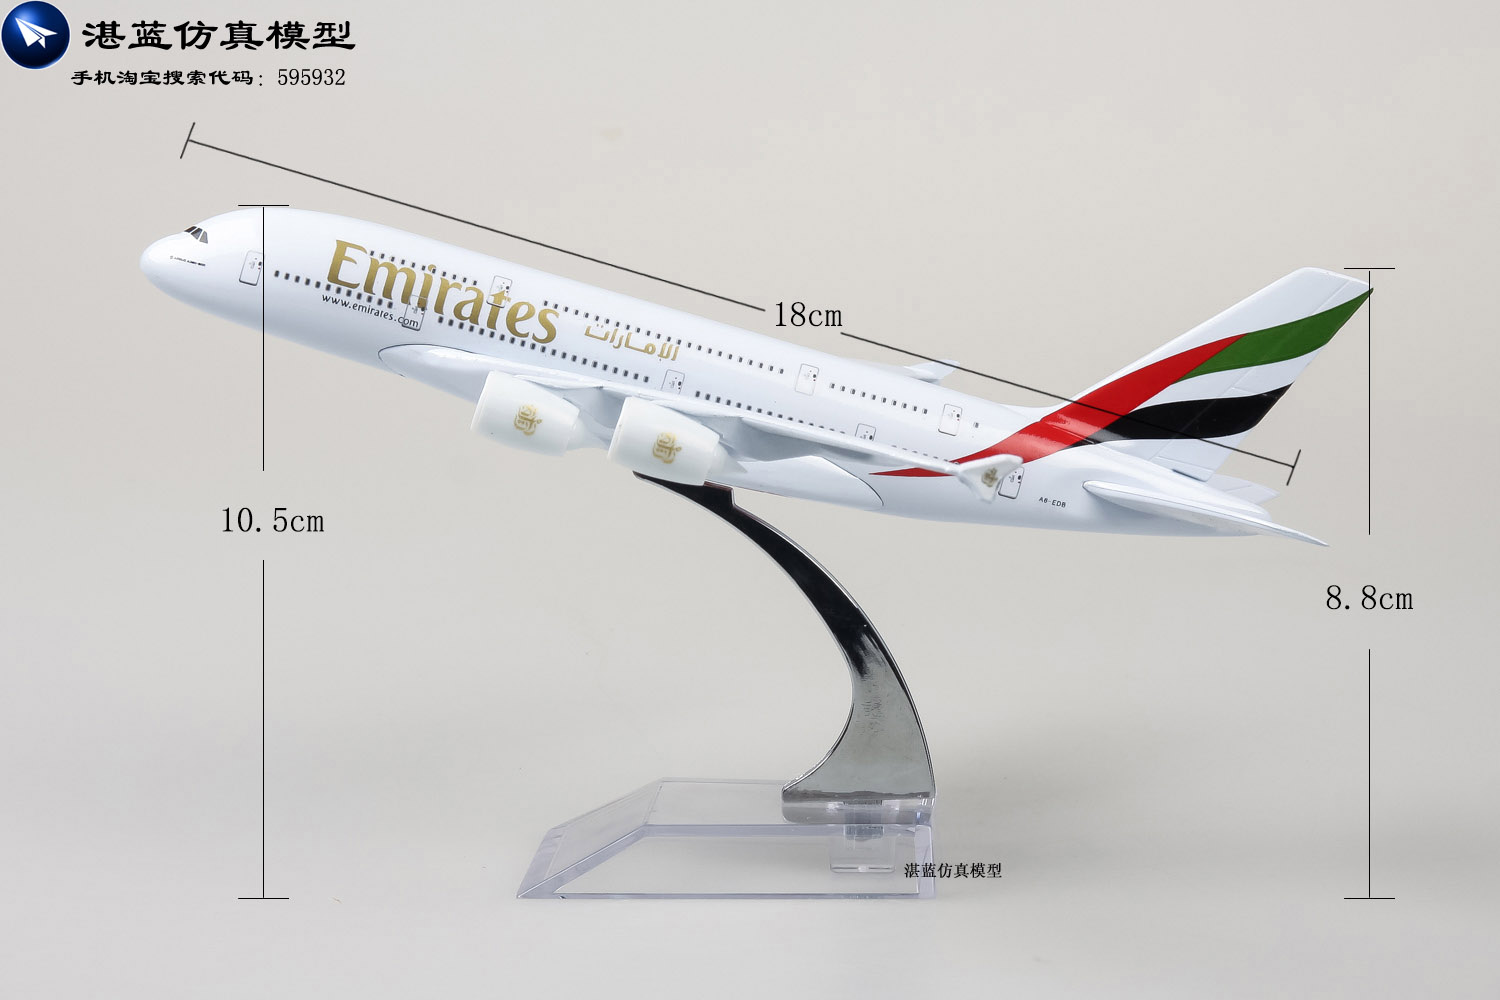 1/300 Scale Emirates Airline Airbus A380 (18cm Length) Diecast Metal Plane Model Toy New In Box For Collection/Gift/Kids(China (Mainland))